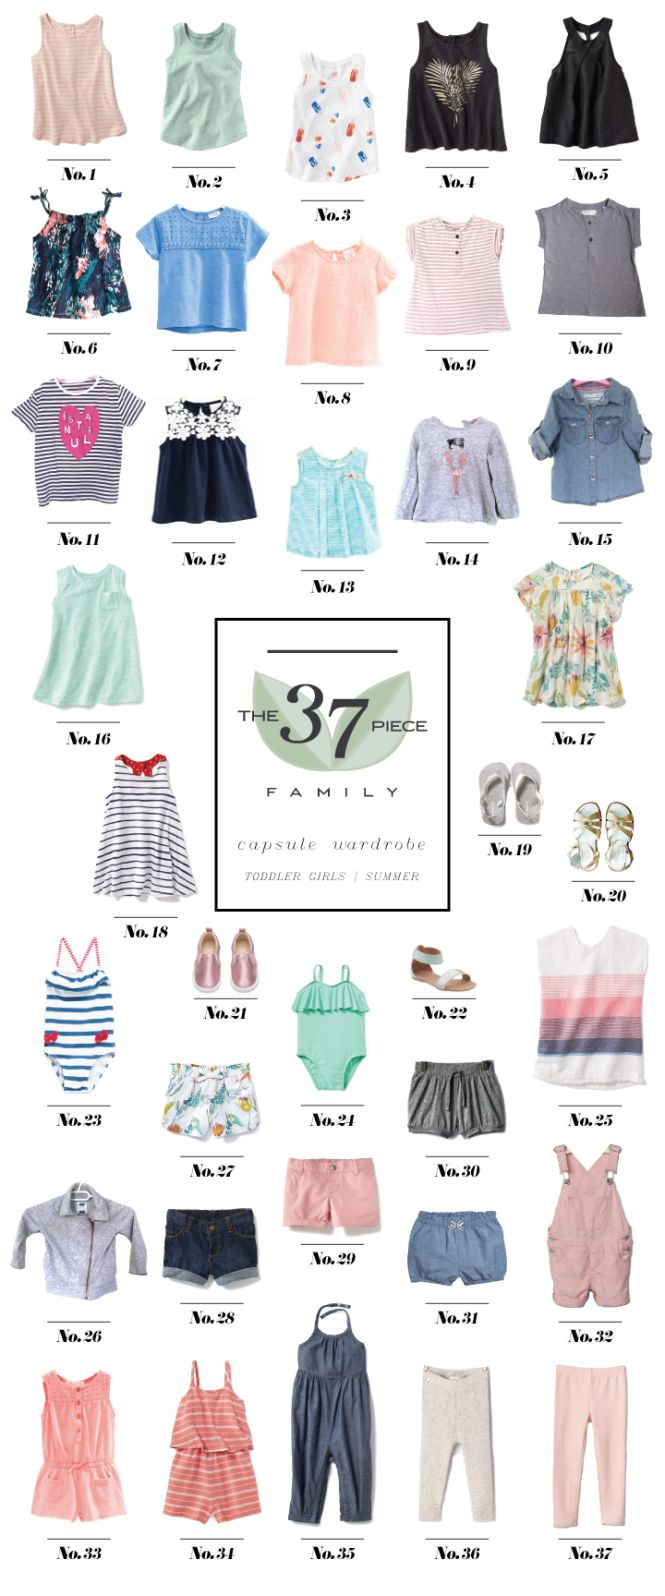 Nora's Summer Capsule Wardrobe:: Toddler Girls - The 37 Piece Family